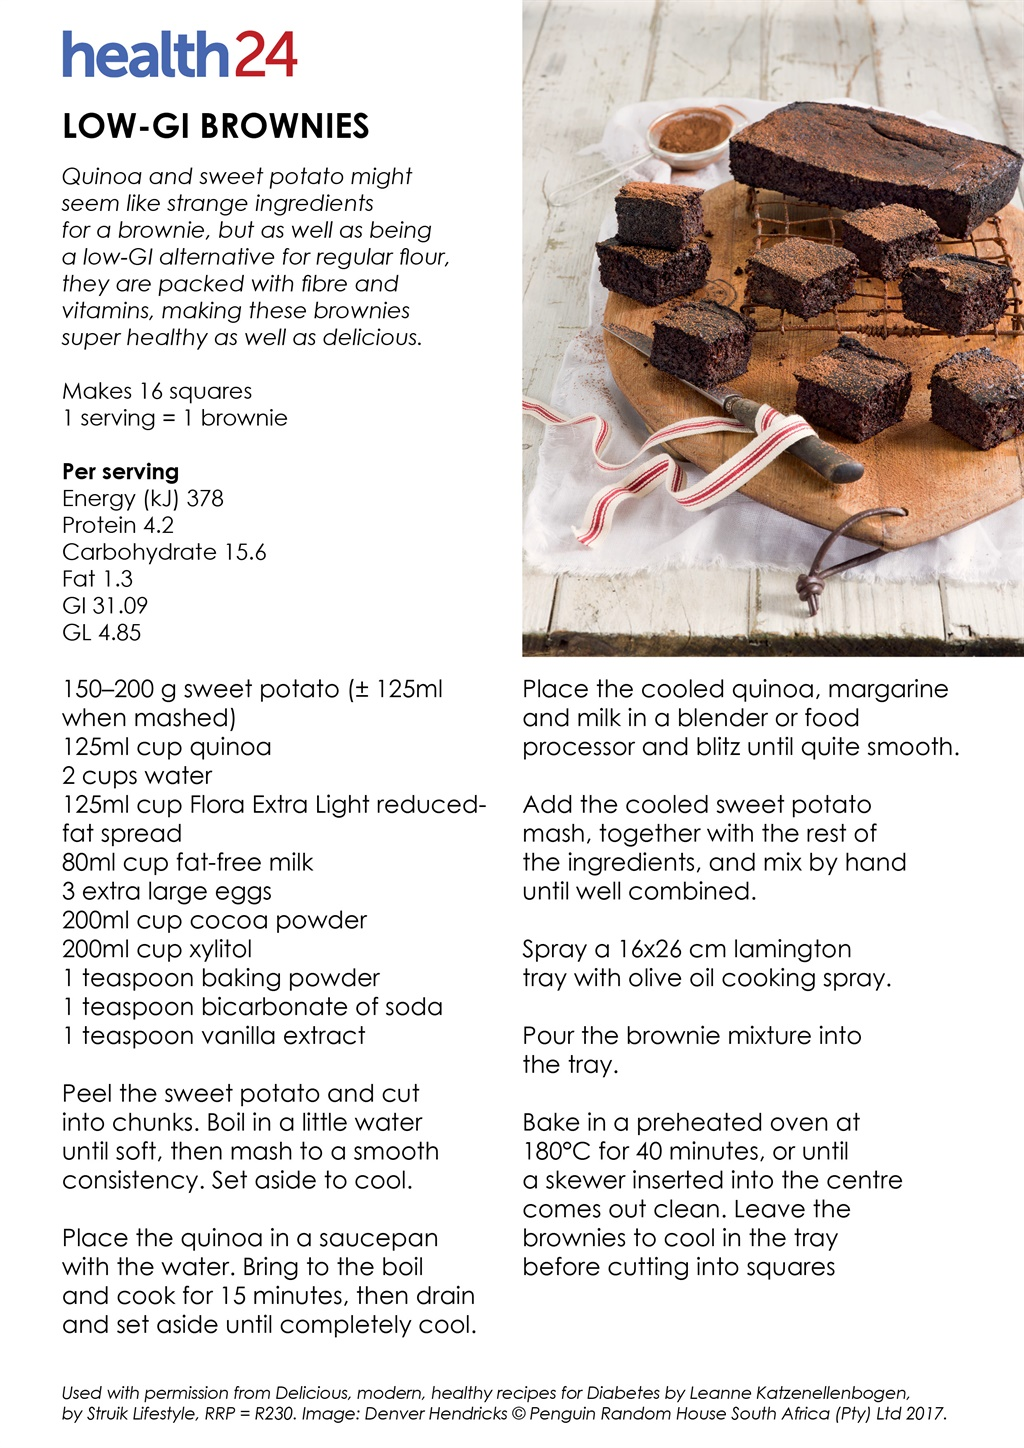 brownie recipe, low GI, diabetes, chocolate